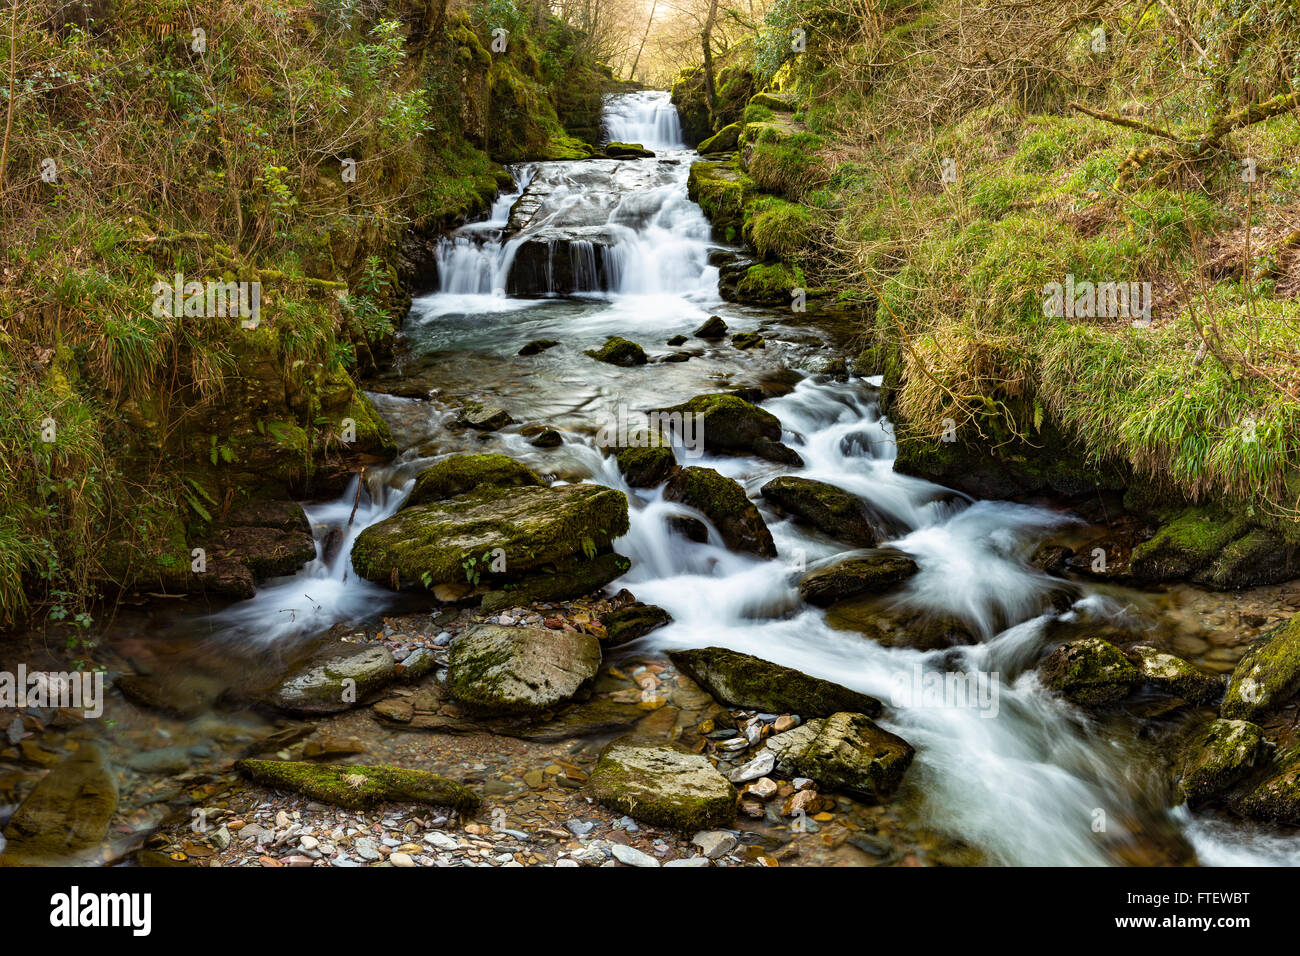 A Waterfall at the mouth of Hoaroak Water where it joins the East Lyn River at Watersmeet near Lynmouth, Devon, Stock Photo